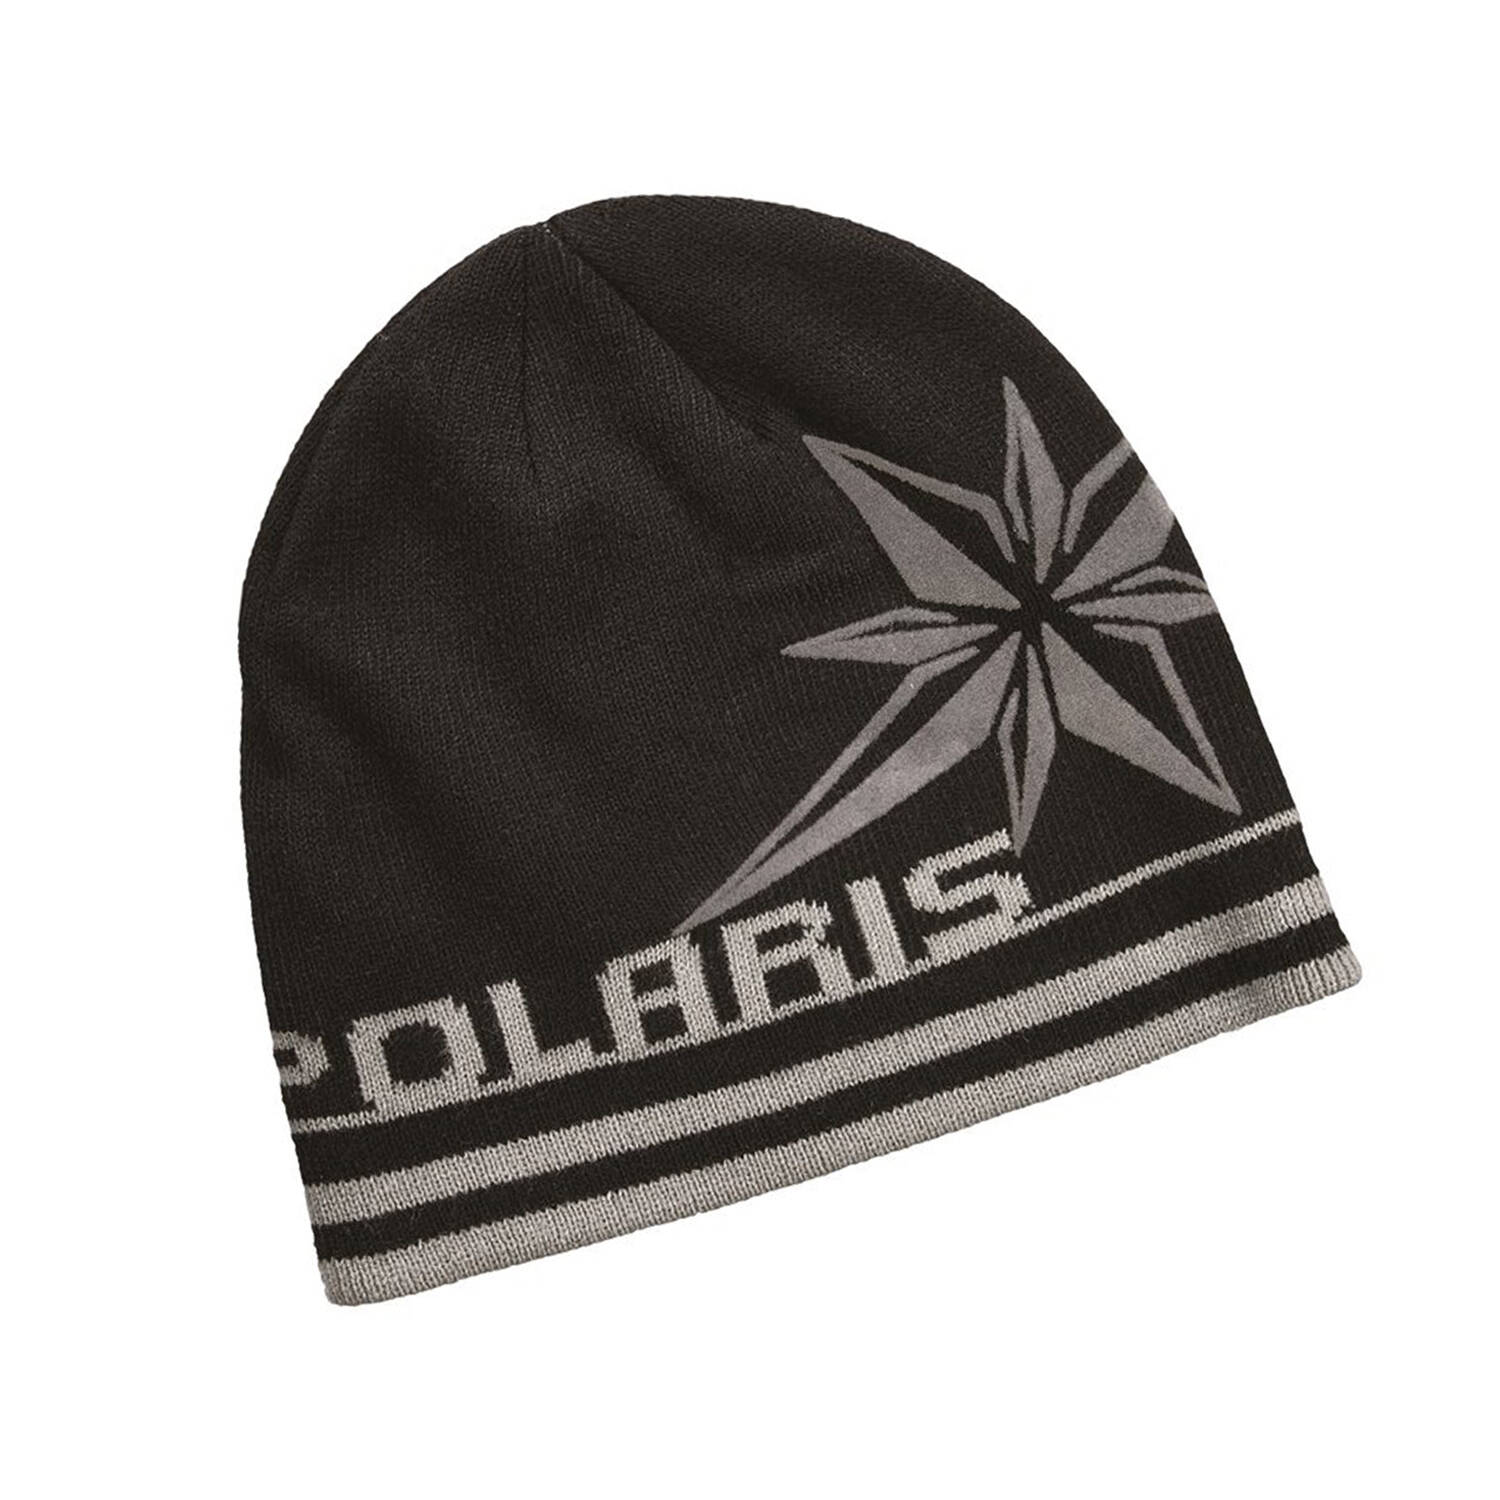 Unisex Knit Northern Star Beanie, Black